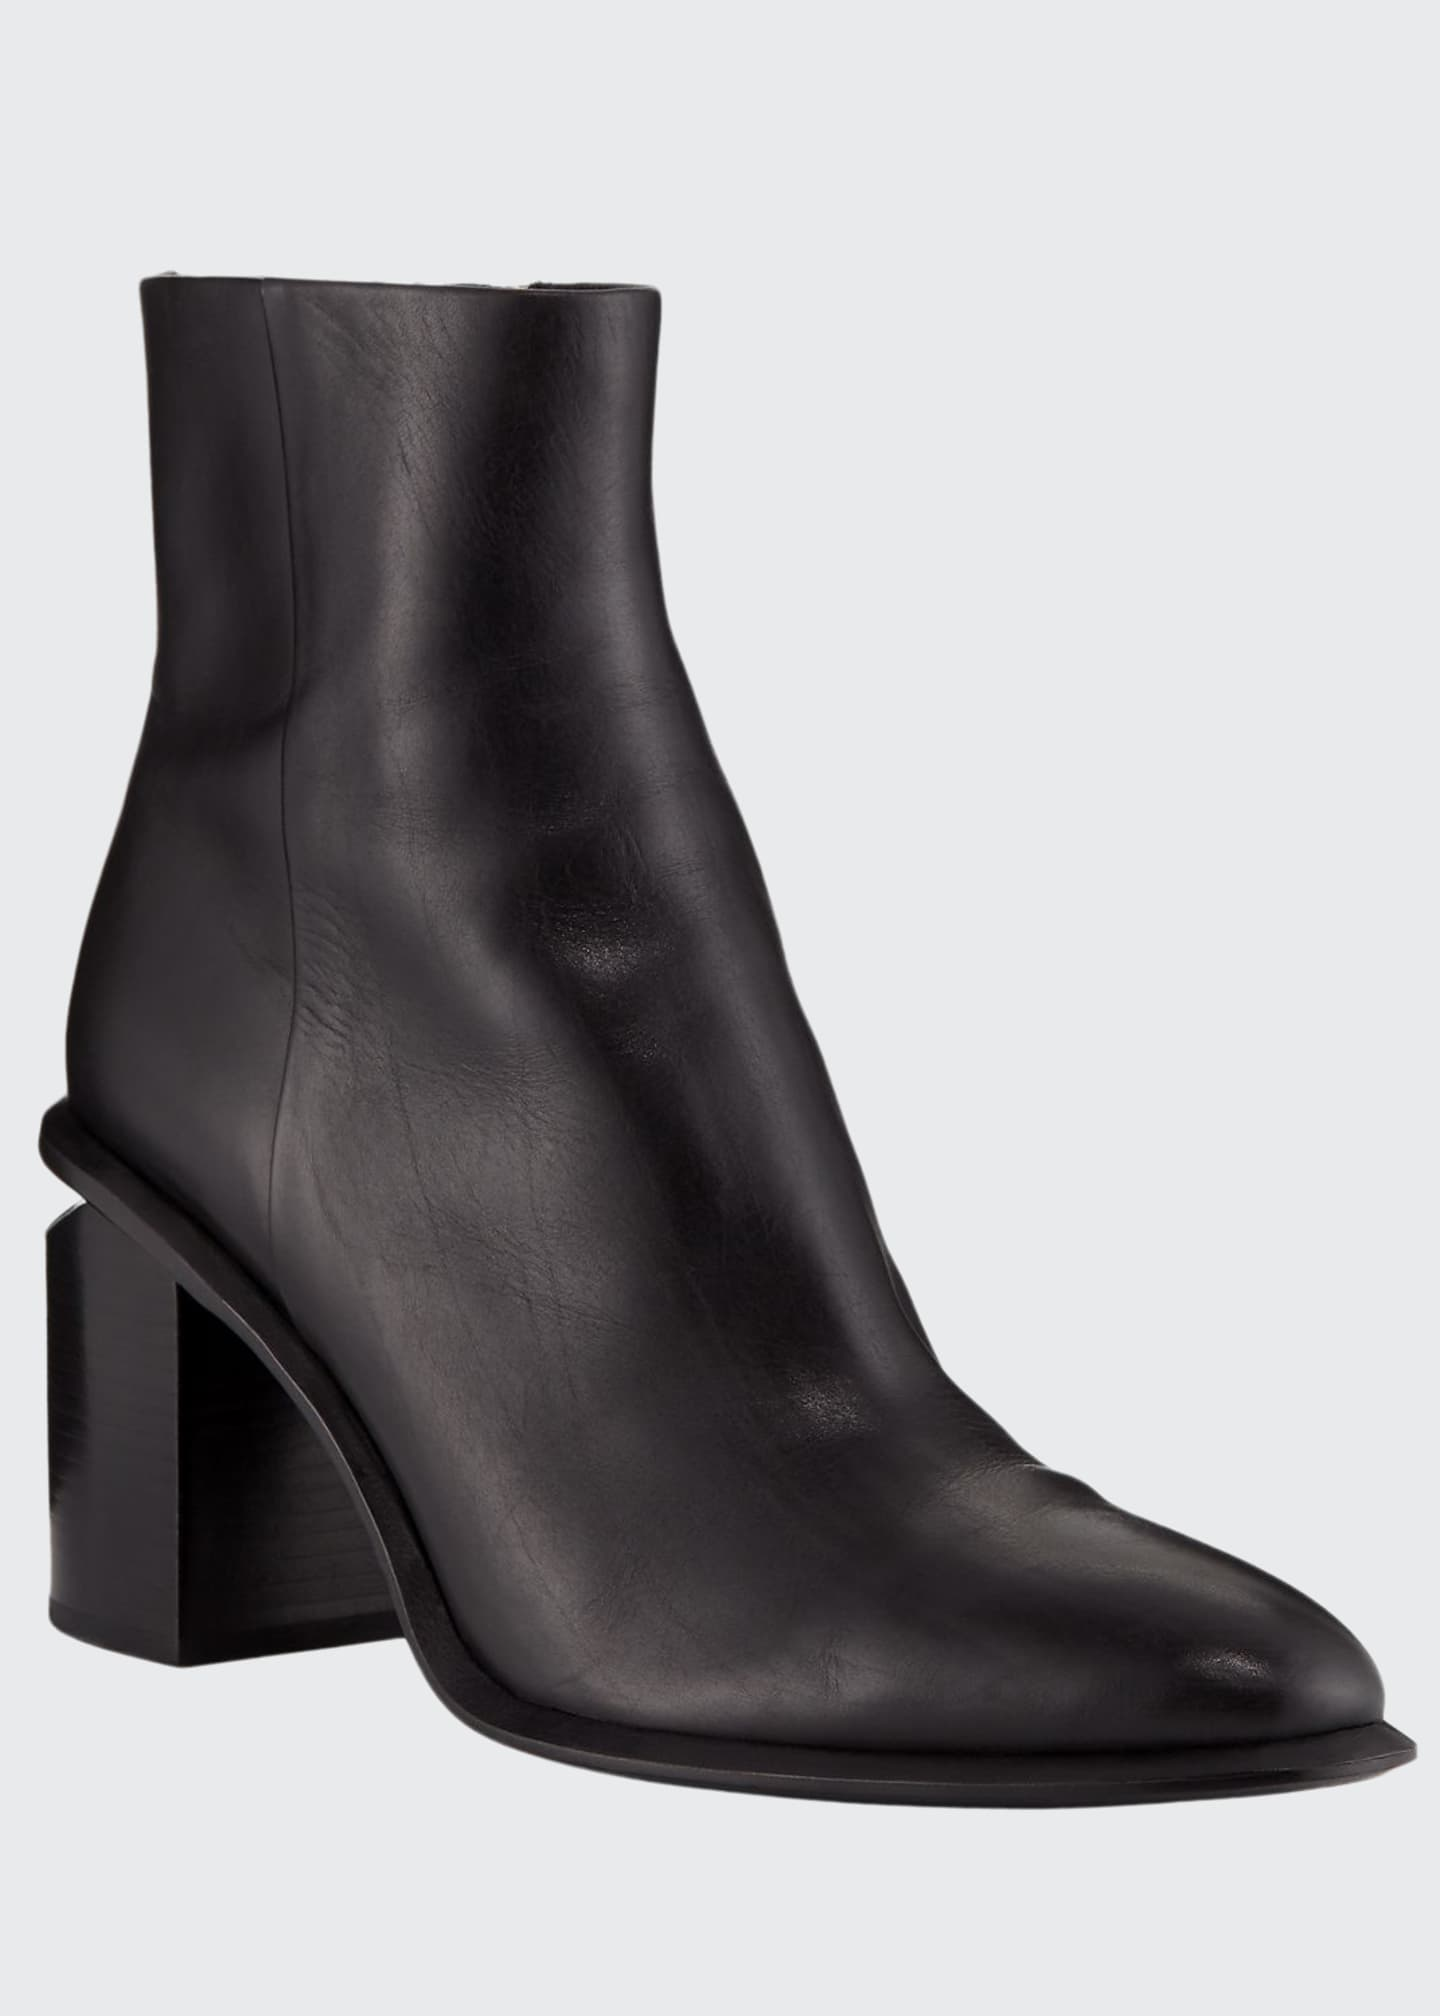 Alexander Wang Anna Block-Heel Leather Booties - Rhodium-Tone